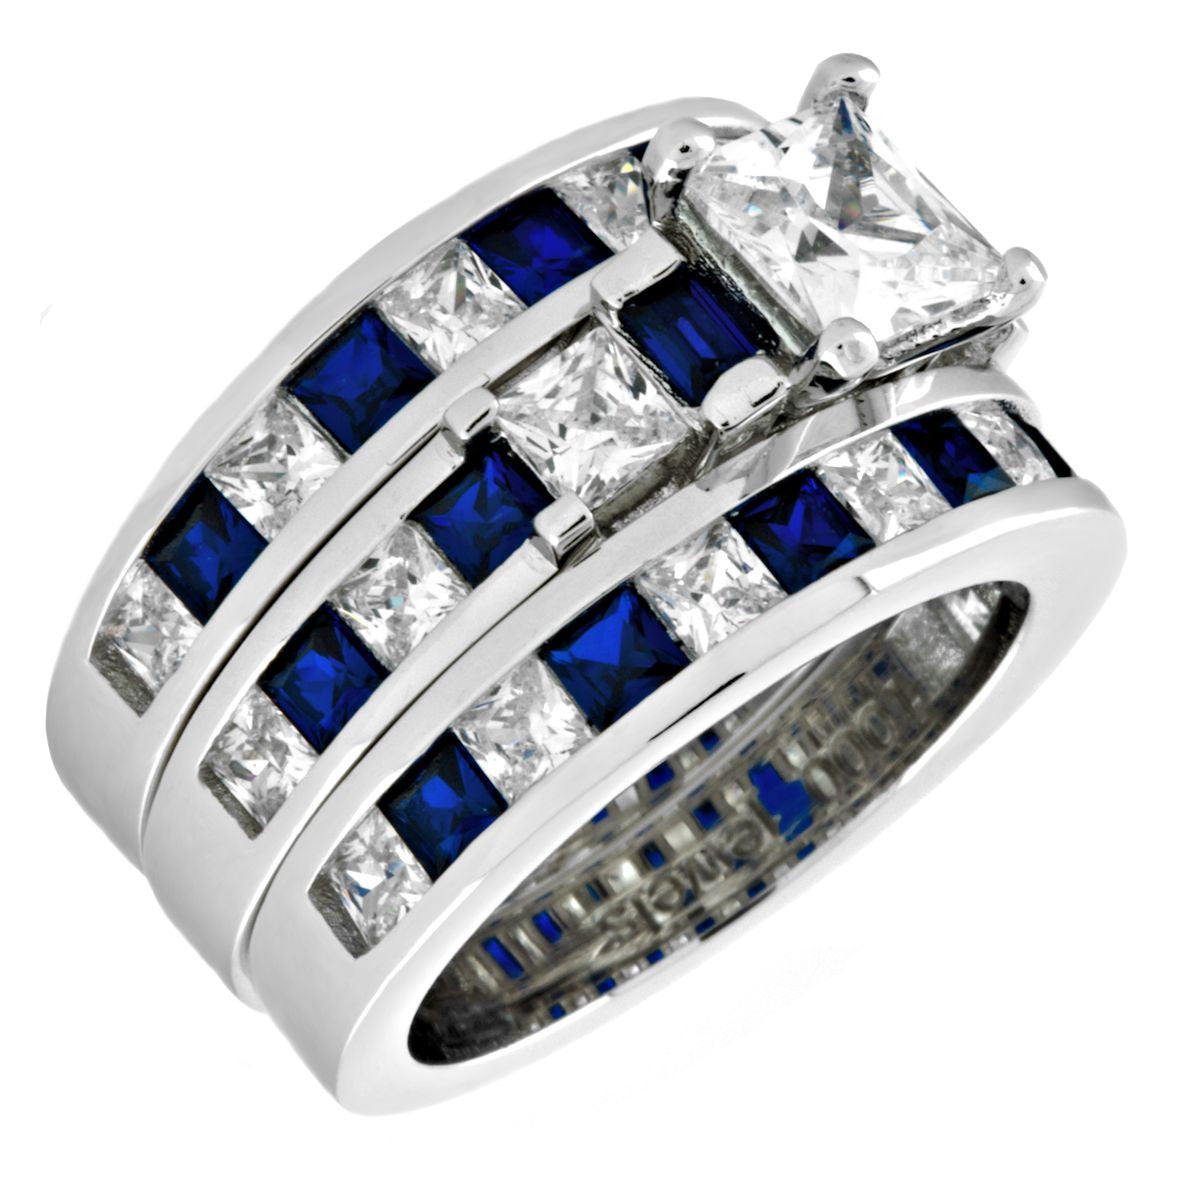 bands dazzlingengagements saved diamond band best engagements sets round pinterest engagement on accessories sapphire etsy blue images from wedding rings ct to ring set